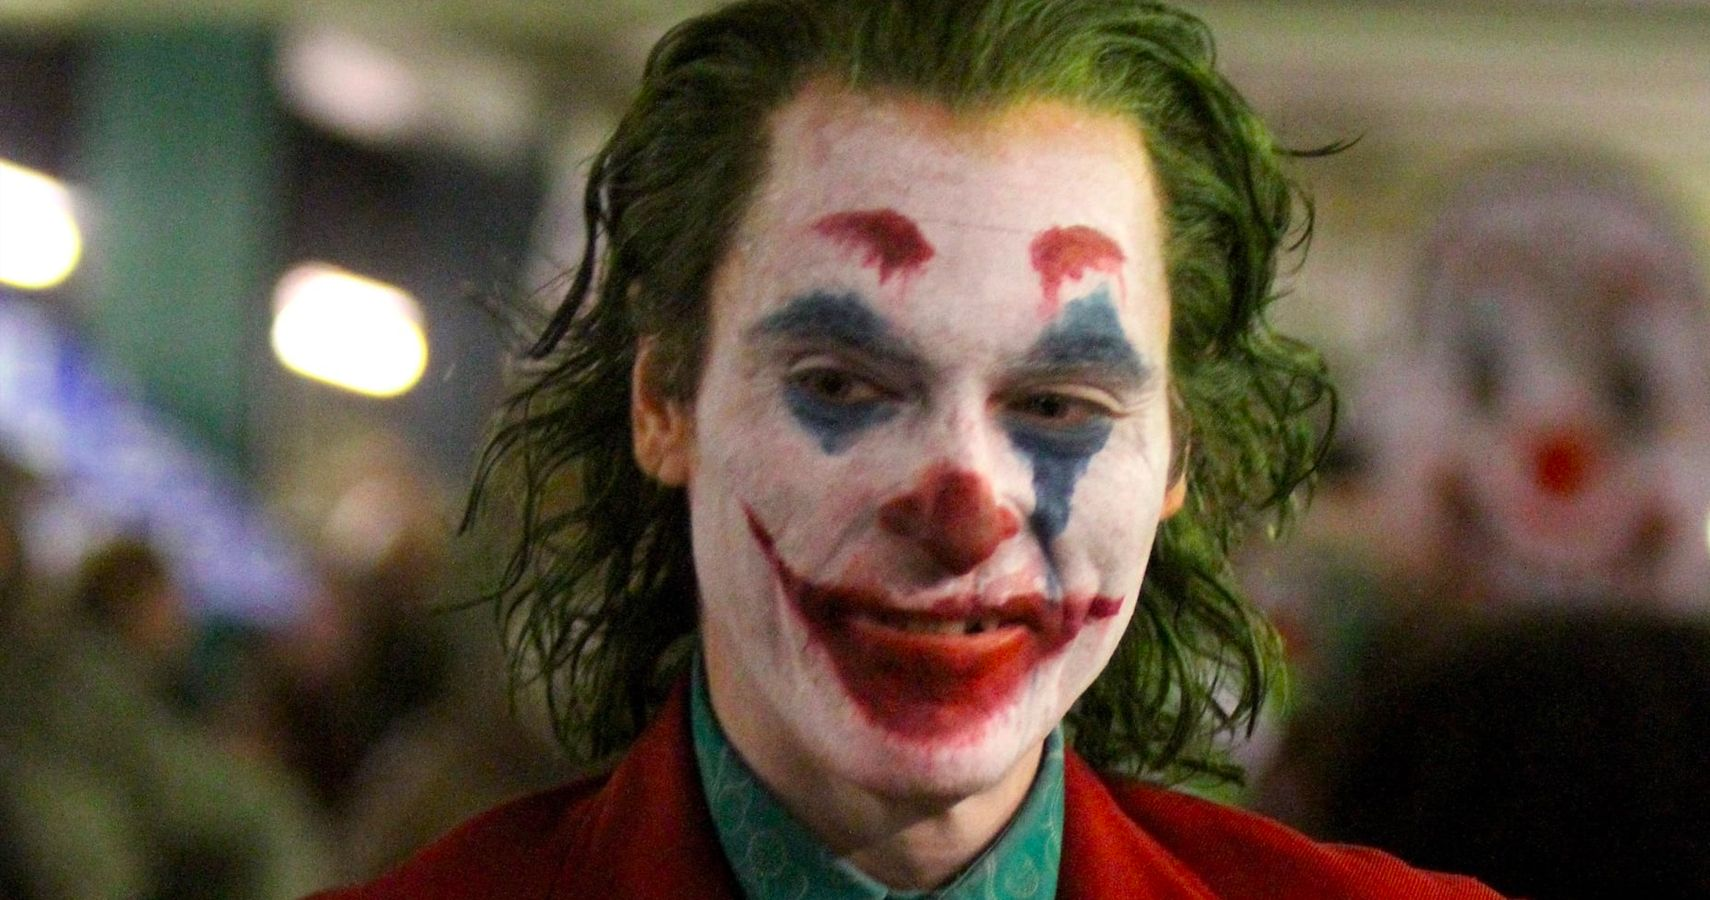 Joker Director Celebrates Film's Success with Message to Fans